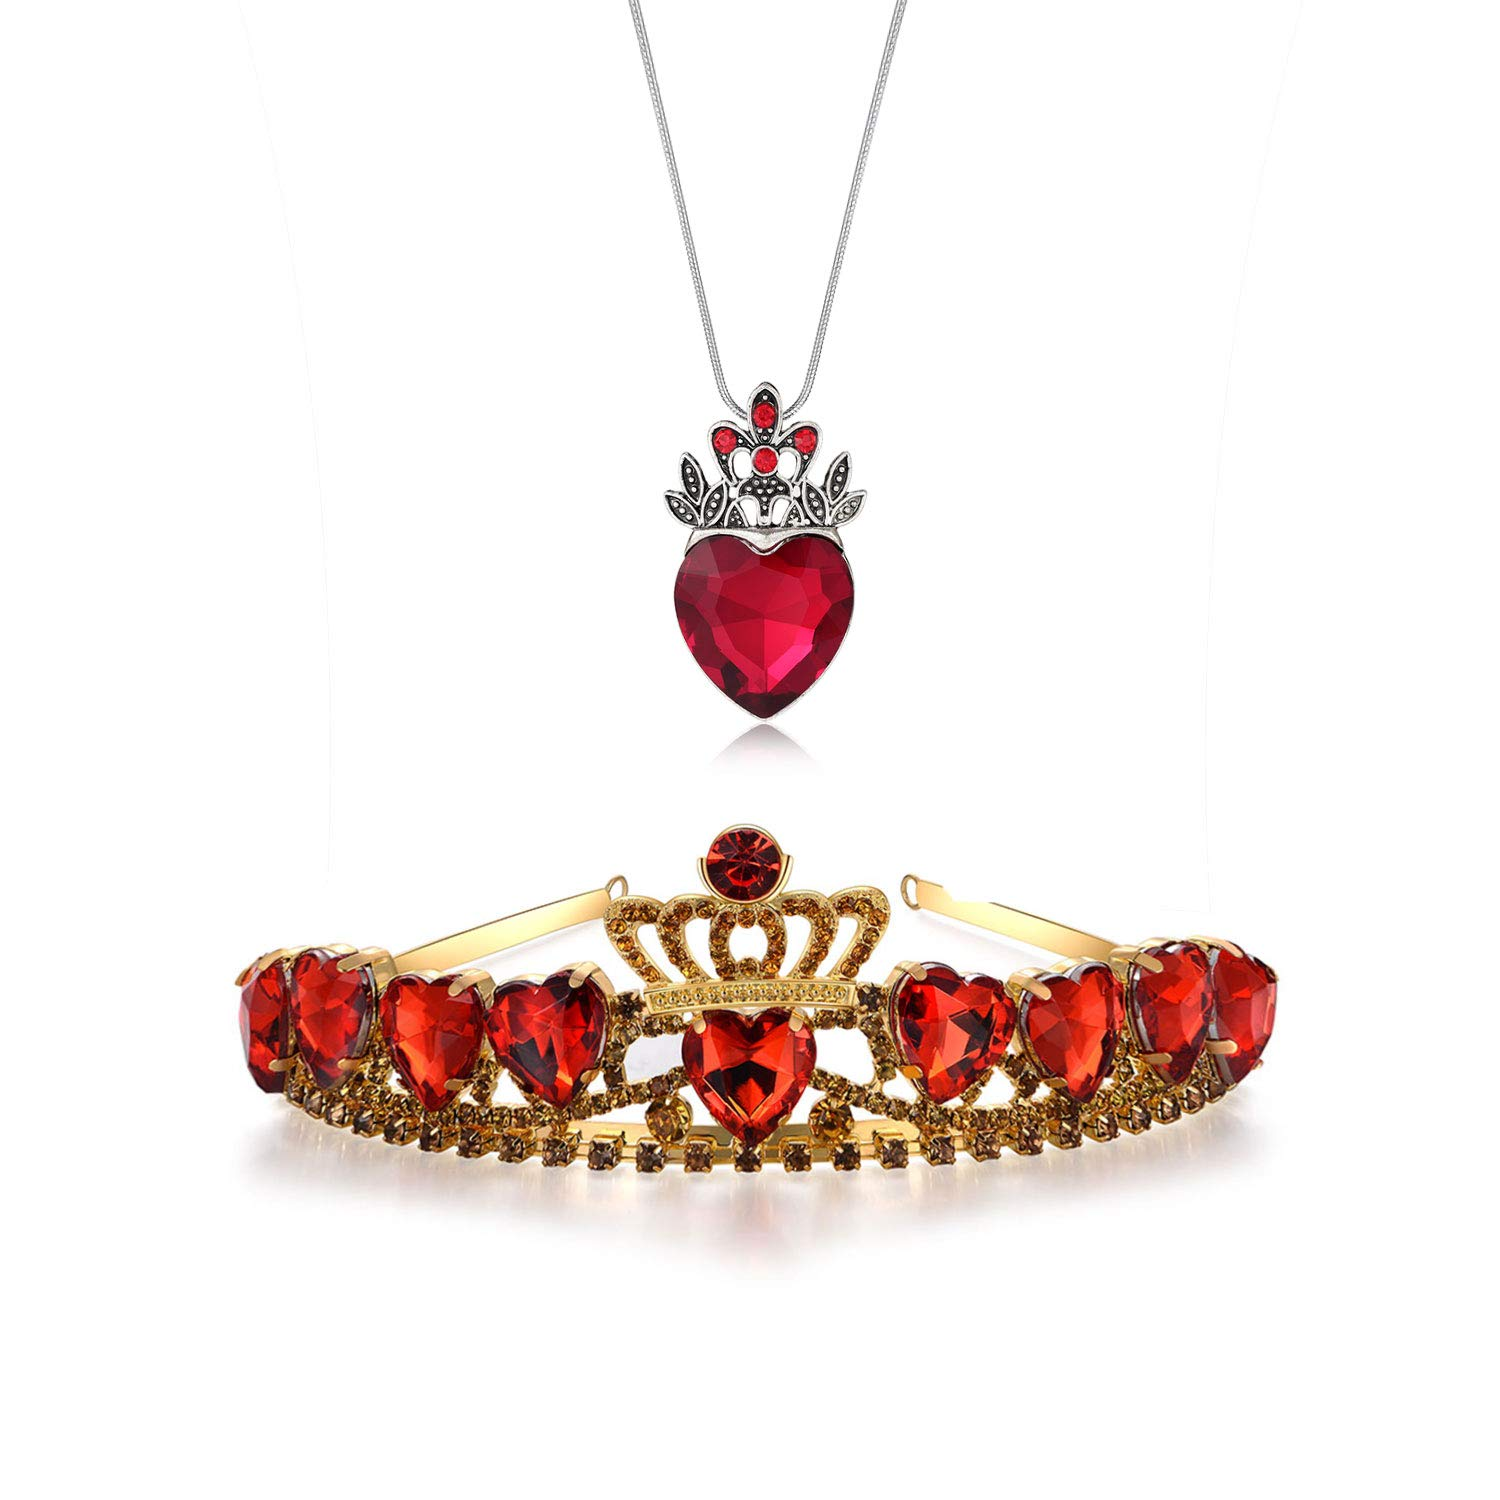 FUNLMO Evie Red Heart Tiara and Necklace Descendants Red Heart Crown Jewelry Set Queen of Hearts Costume Fan Jewelry Pre Teen Gift for Her